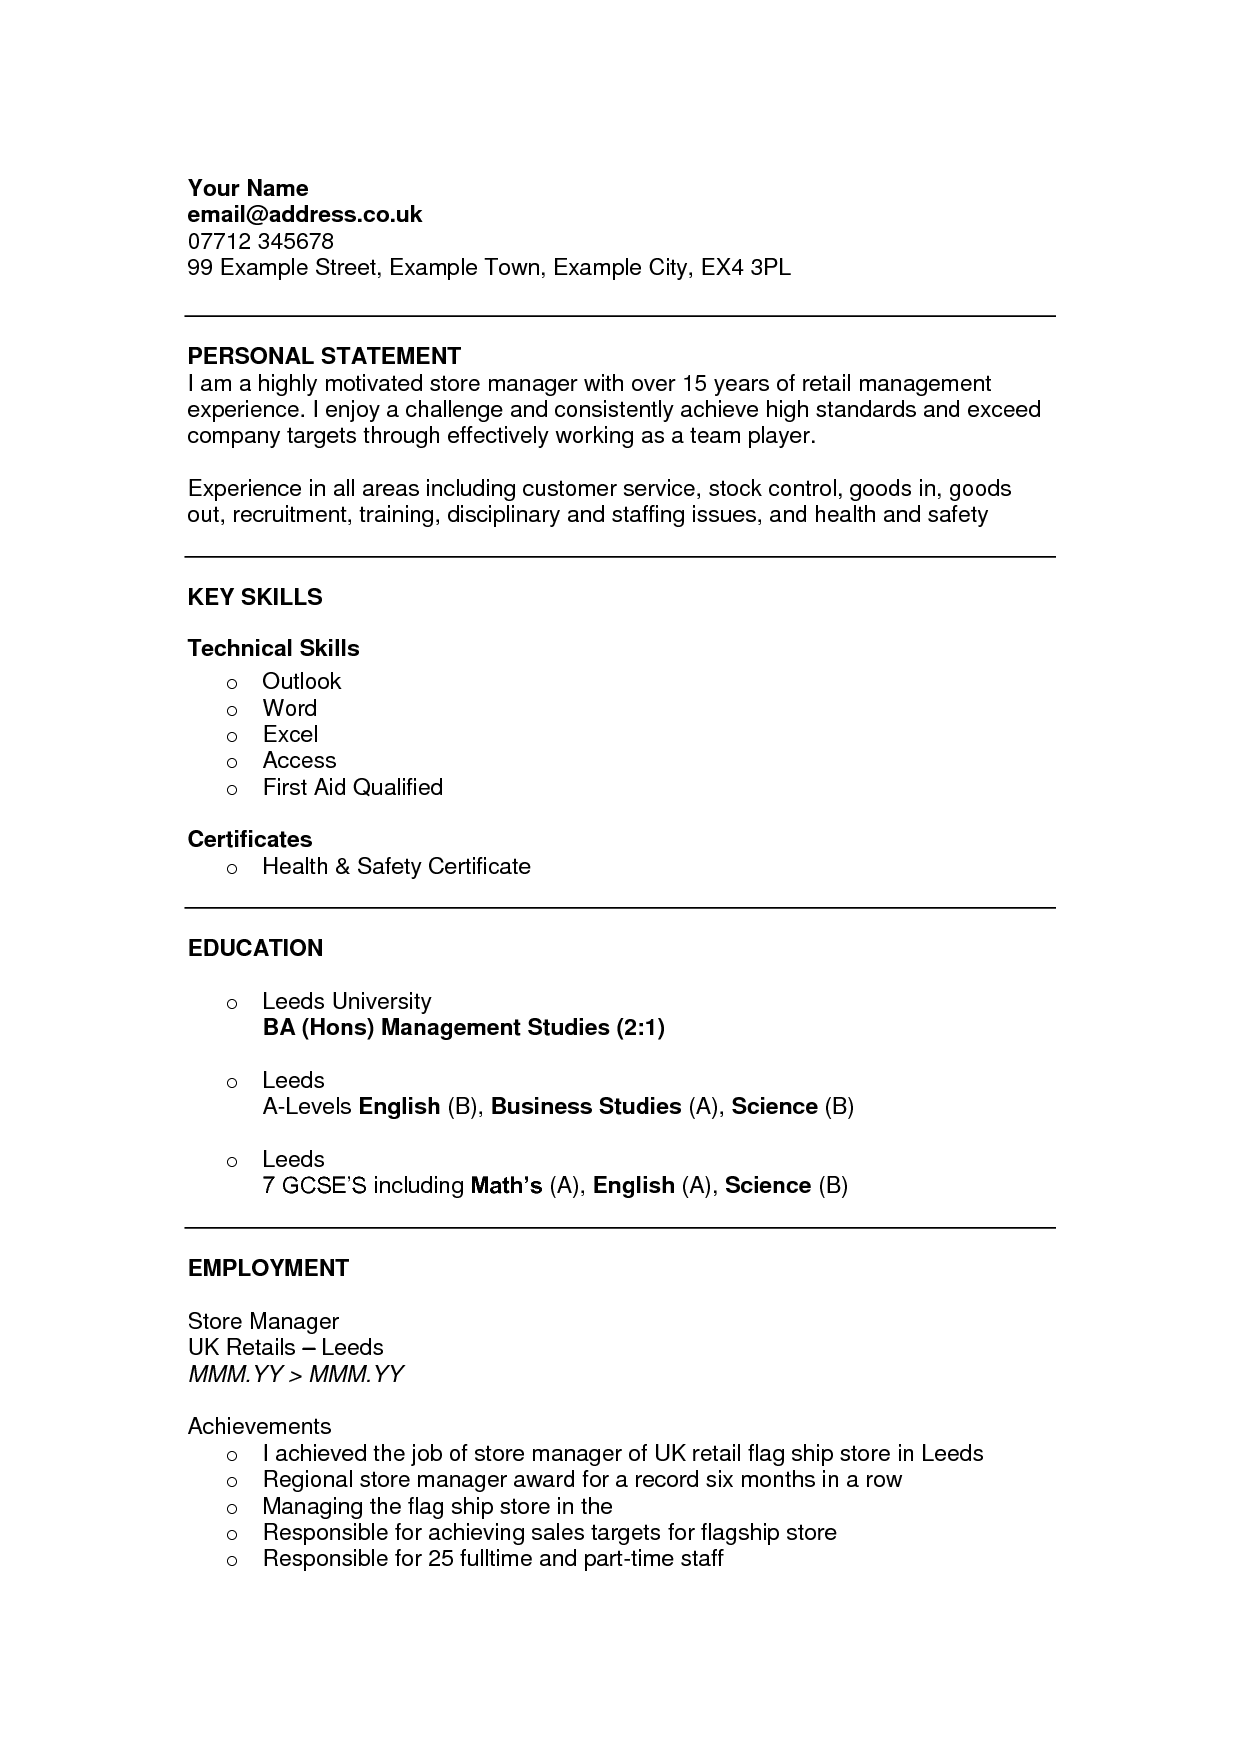 Cv personal statement for part-time job. What is a personal ...